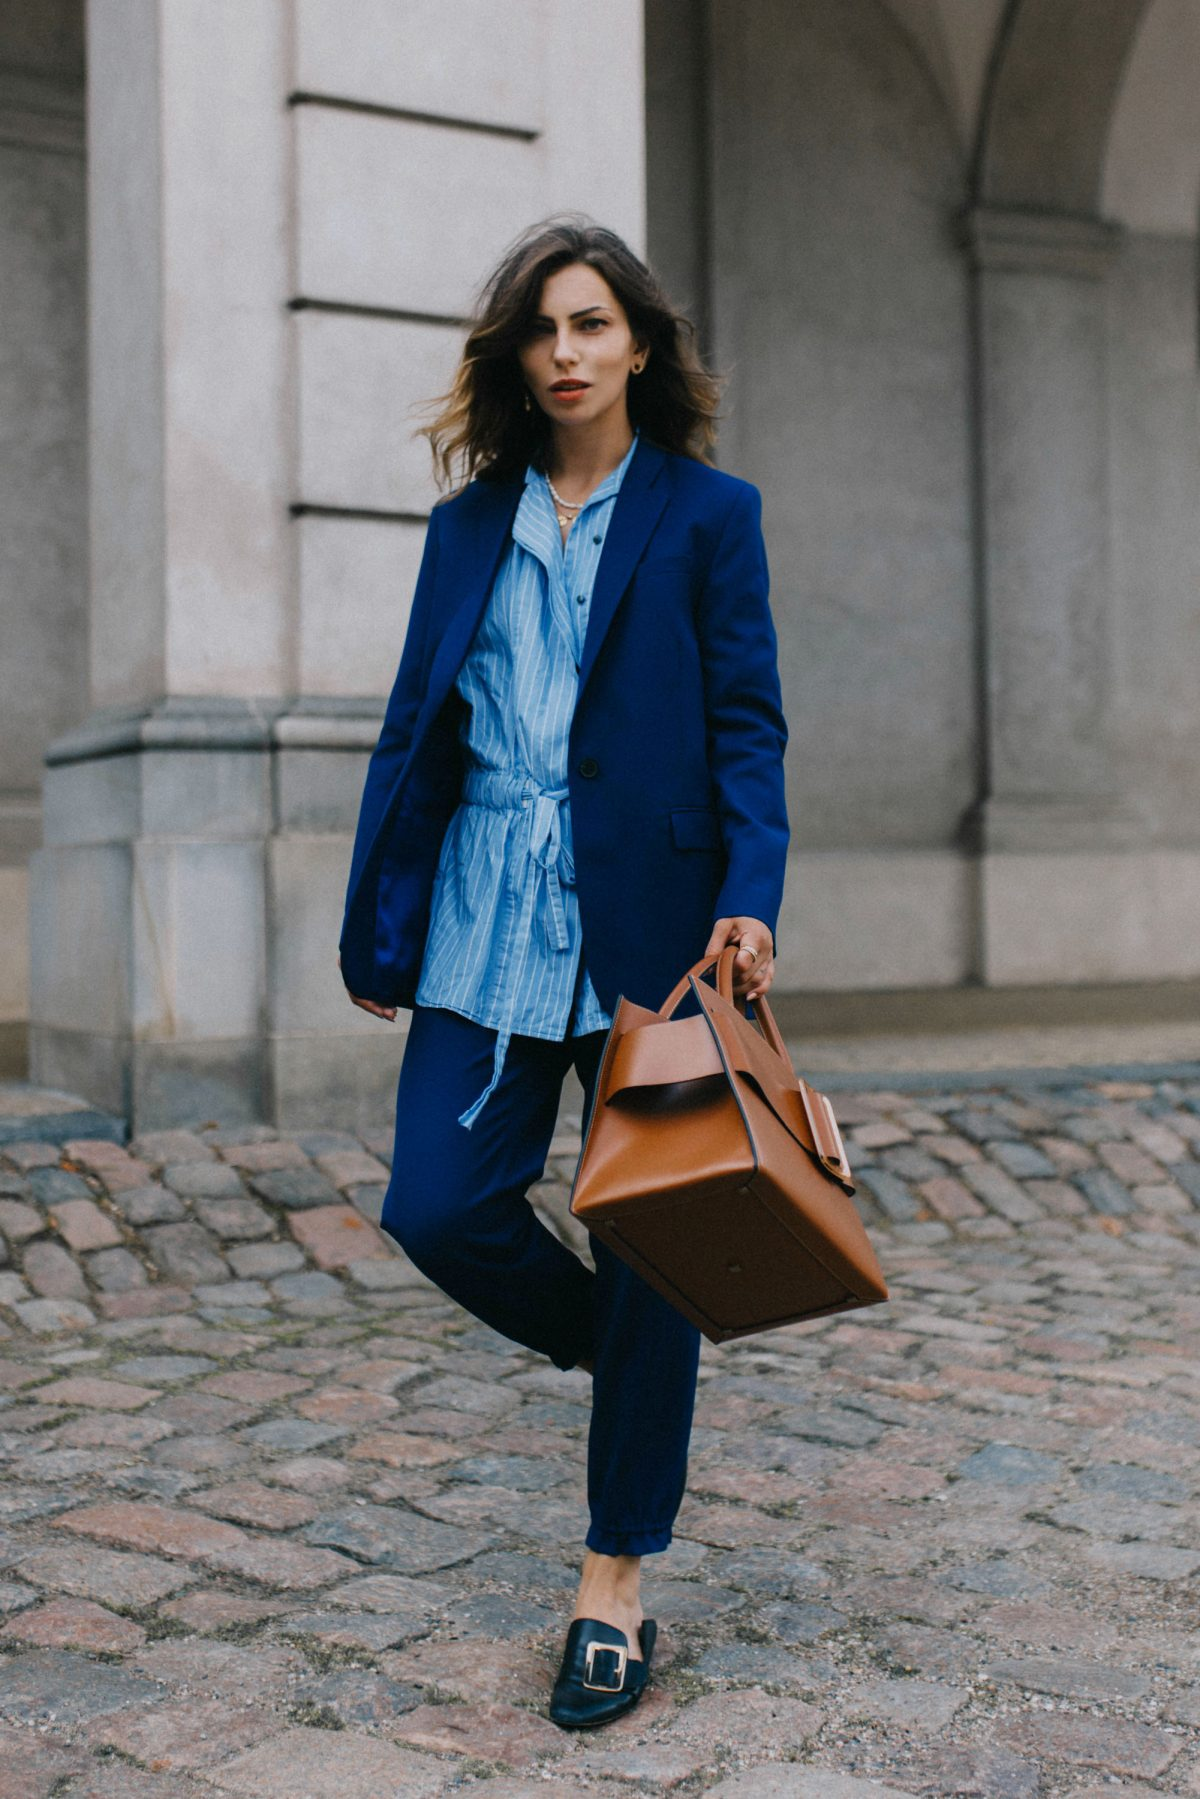 The Modern Blue Suit